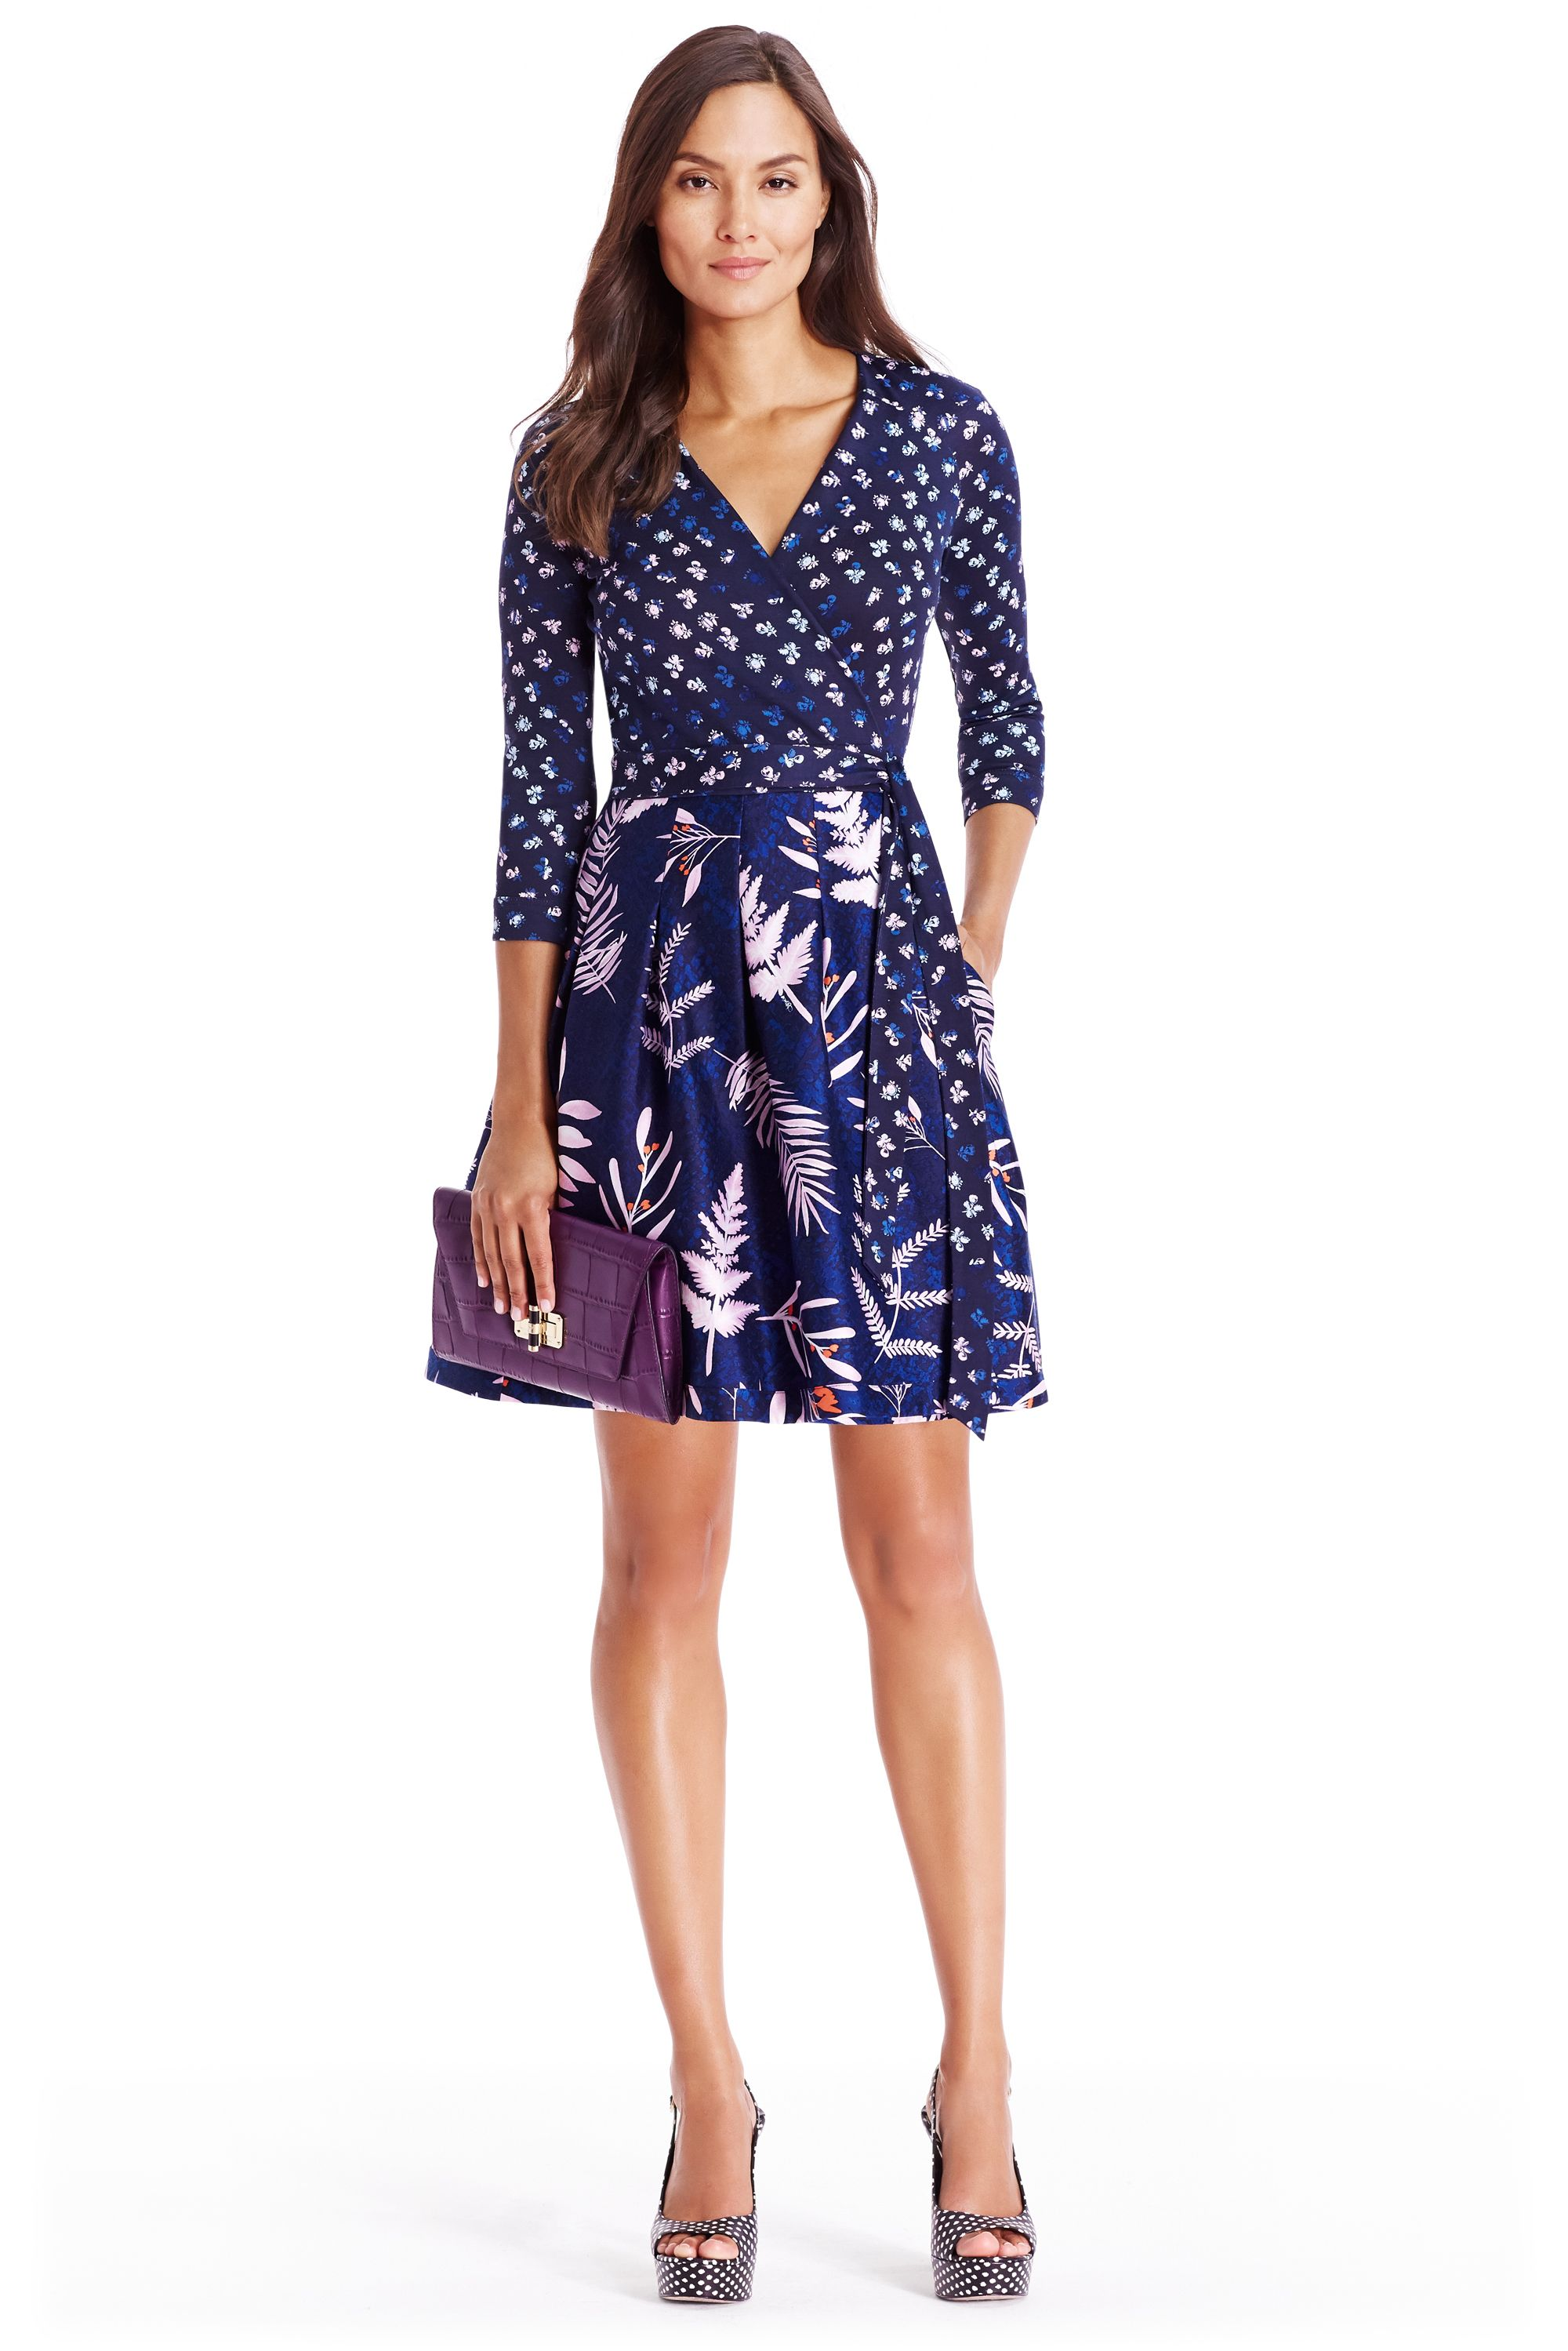 33438e58399711 DVF Jewel Silk Combo Wrap Dress in daisy buds tiny indigo  snake leaves